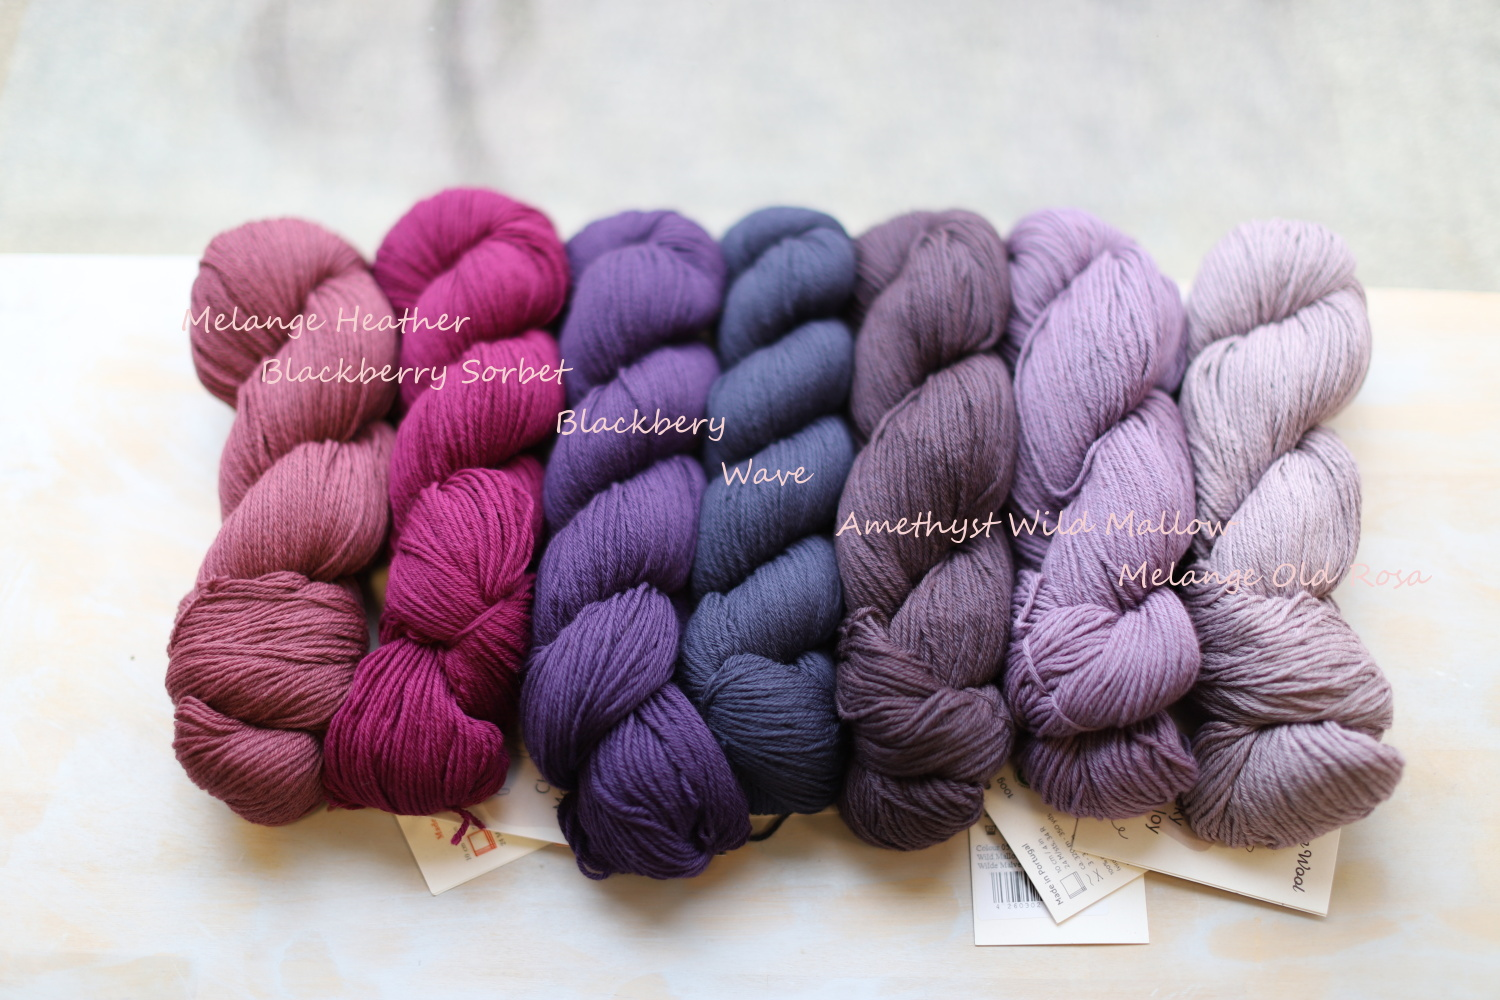 Cheeky Merino Joy - Melange Heather